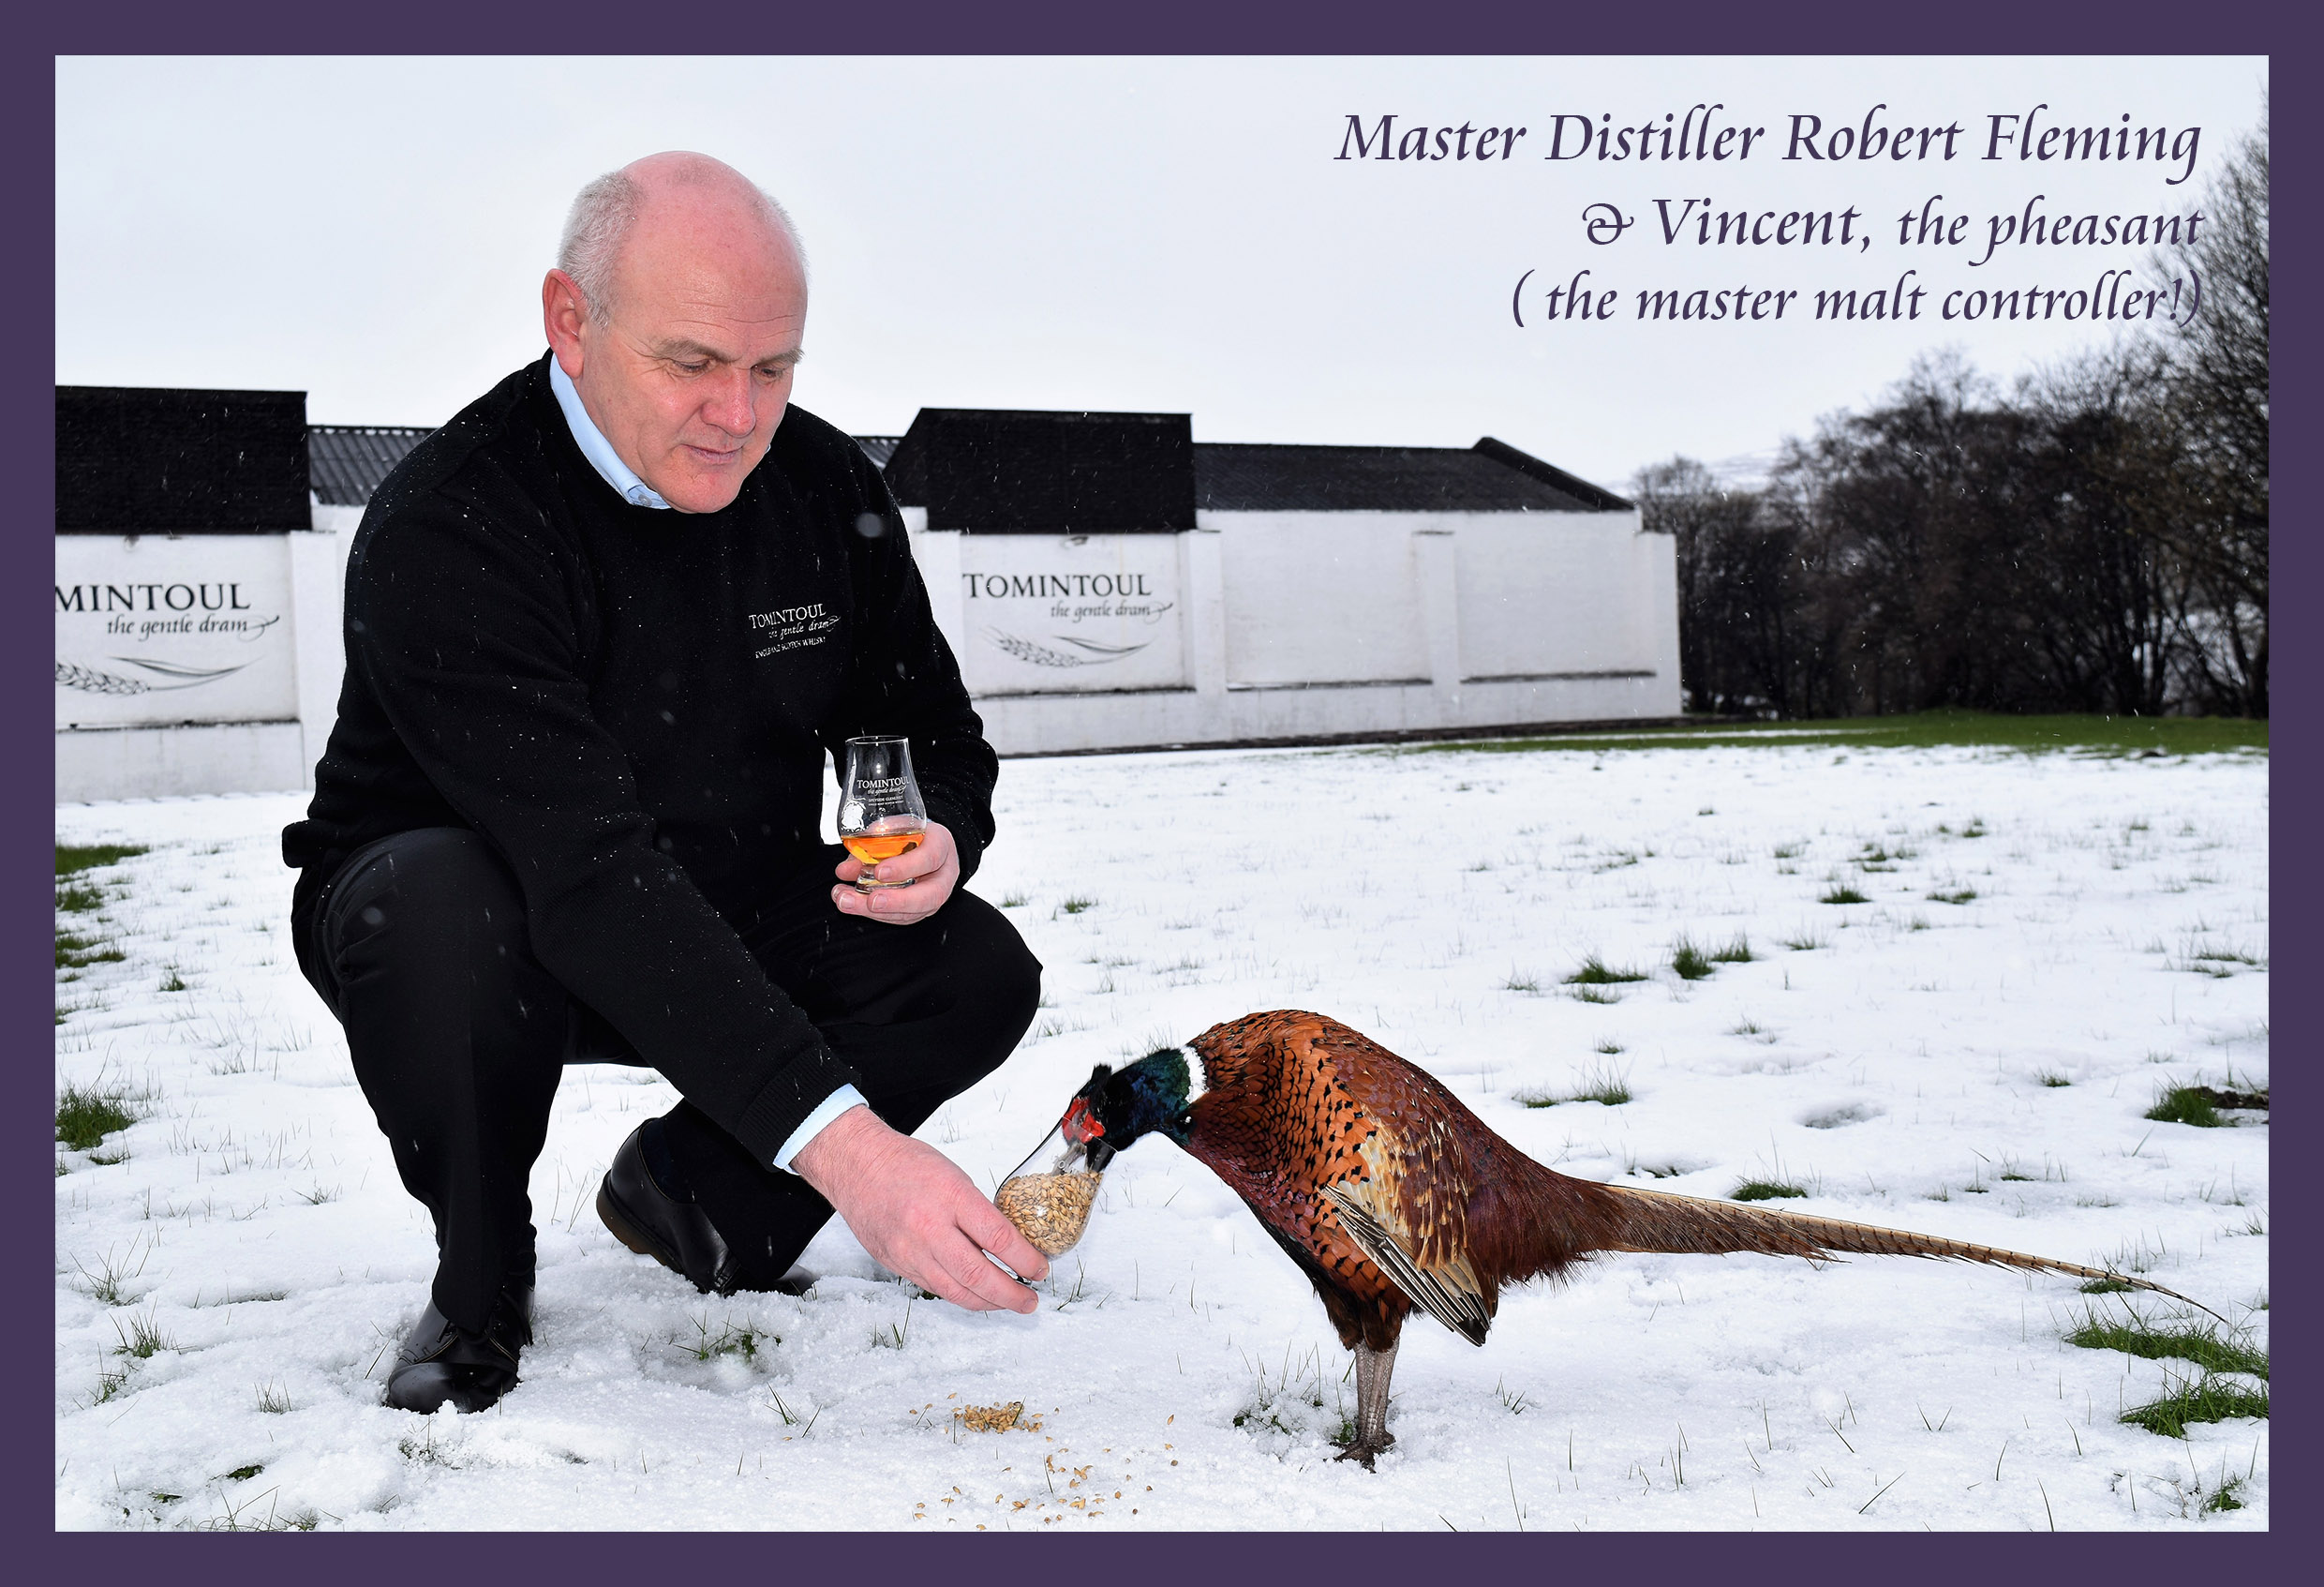 SOSWF - ENJOYING A DRAM WITH THE MASTER DISTILLER 26.4.2017